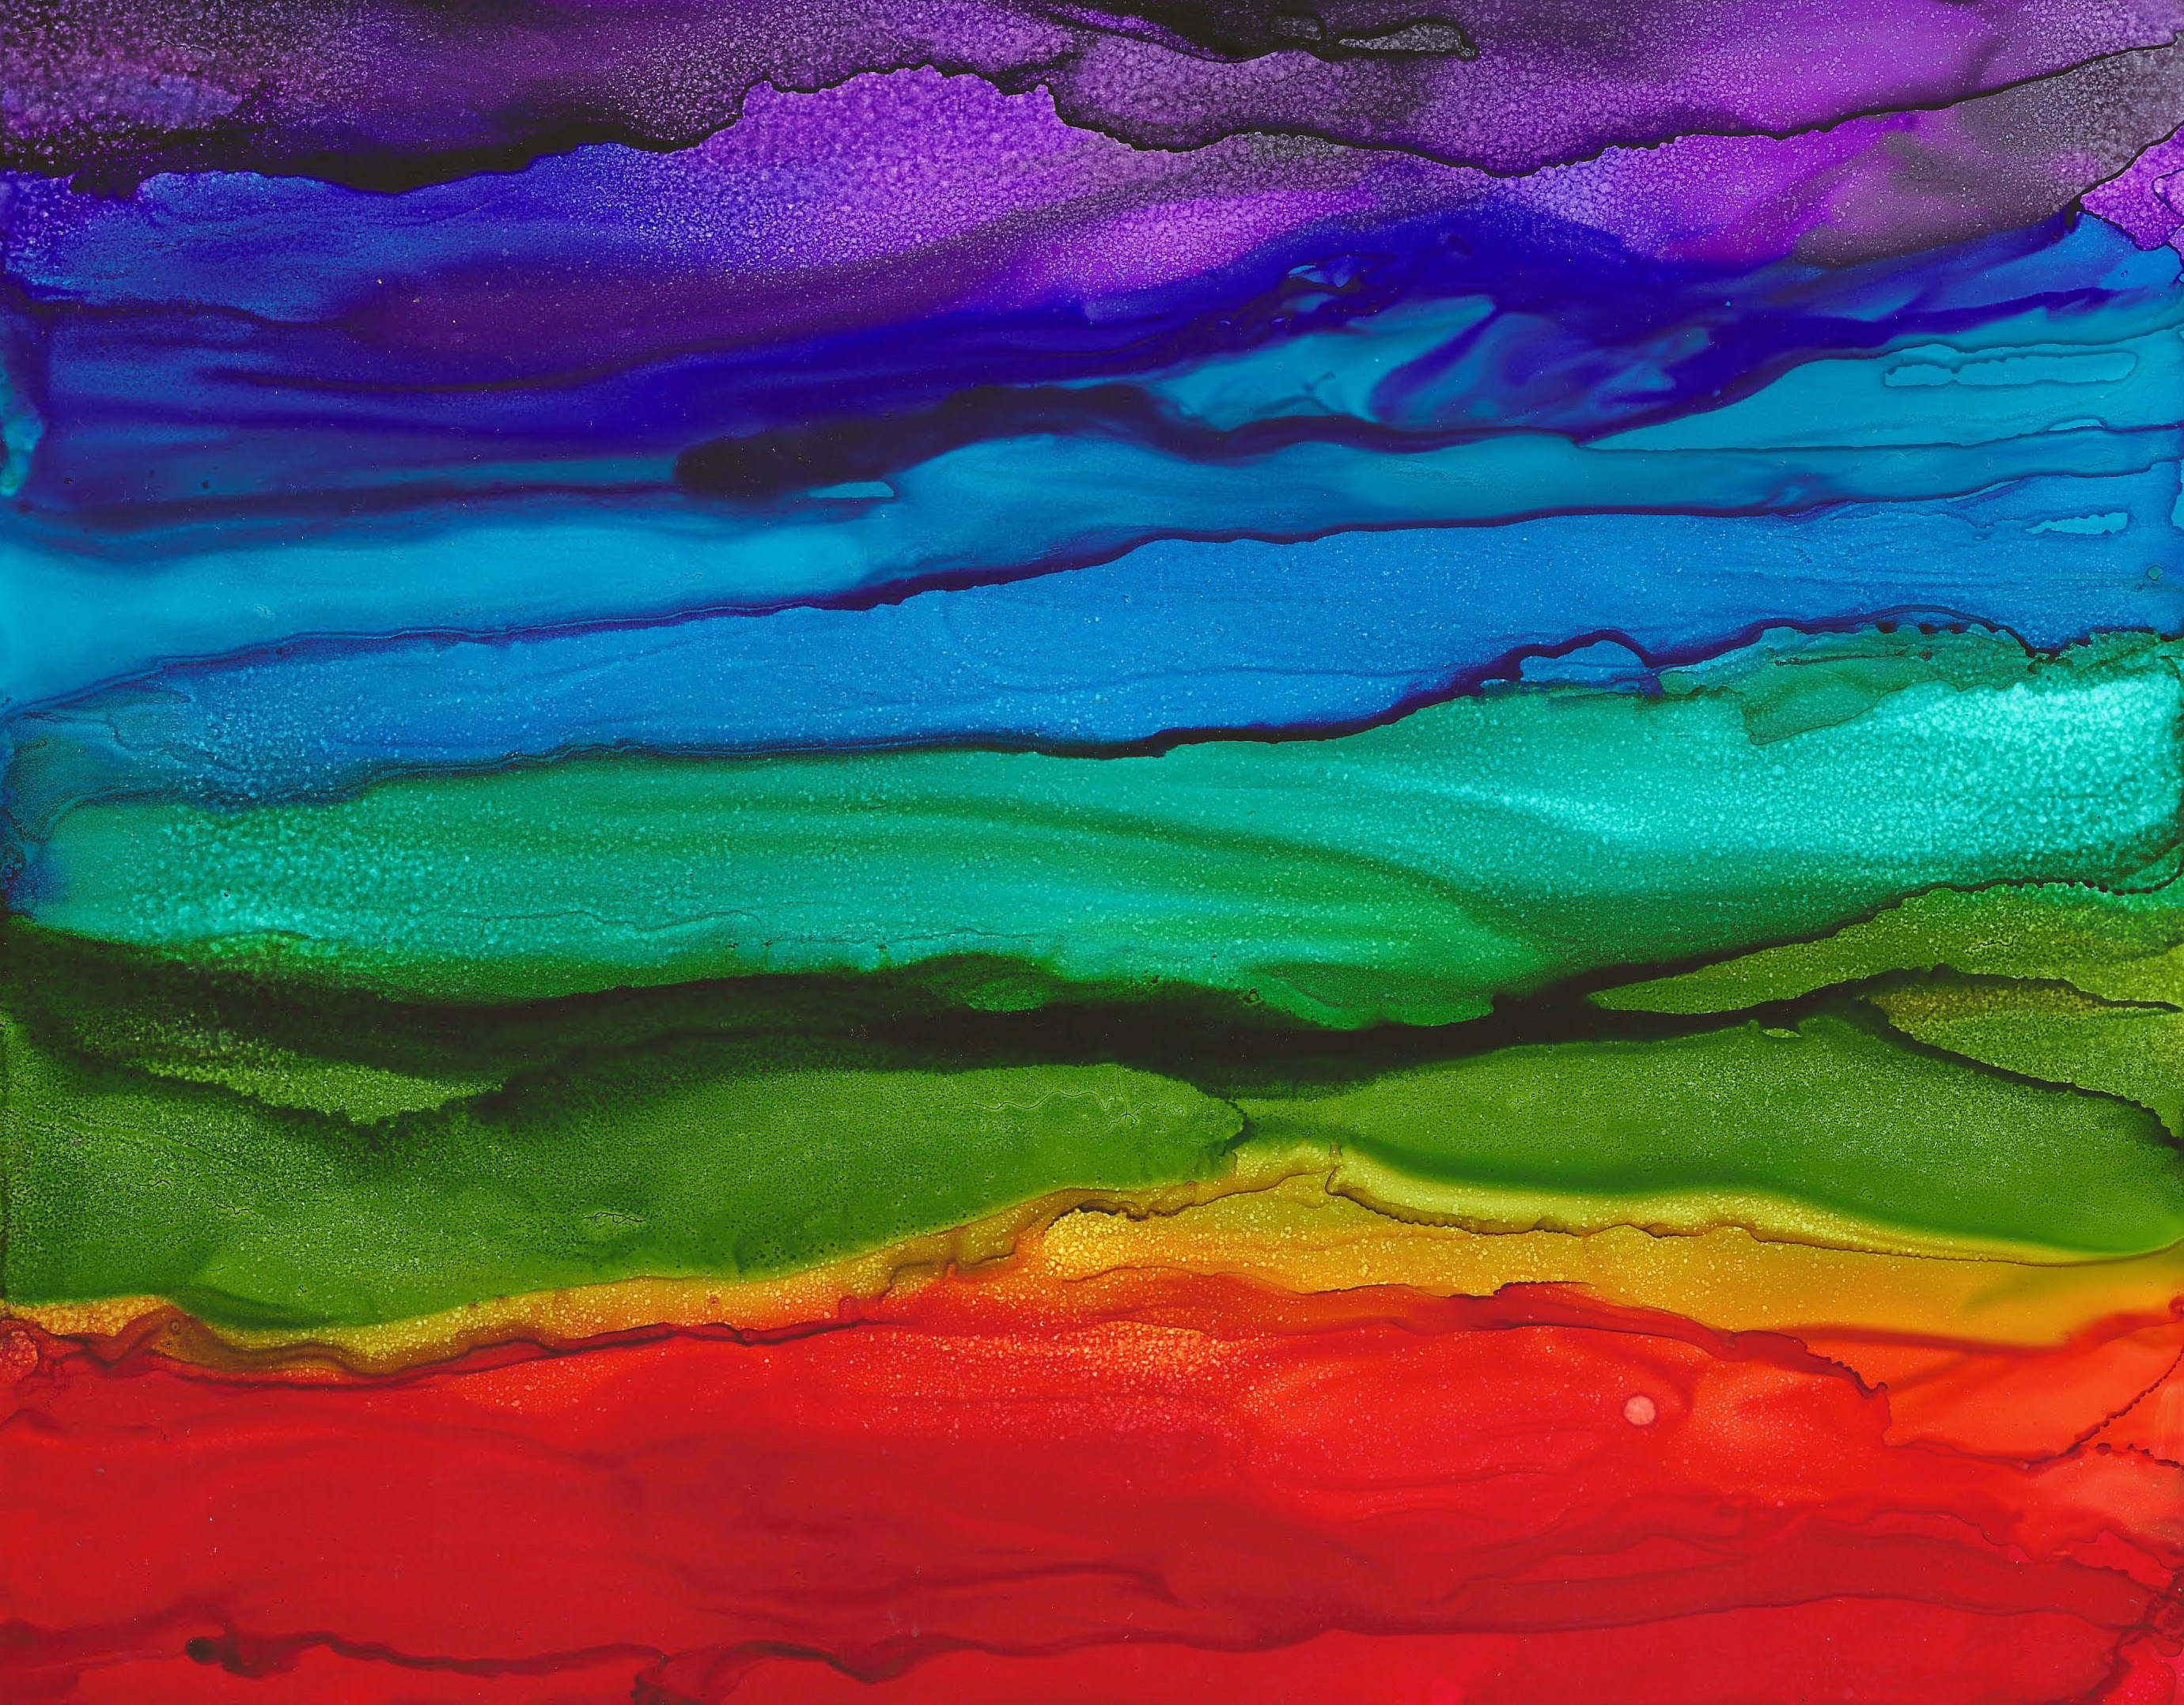 Rainbow Vision - Alcohol Ink 11 X 14 - $150 - Sold